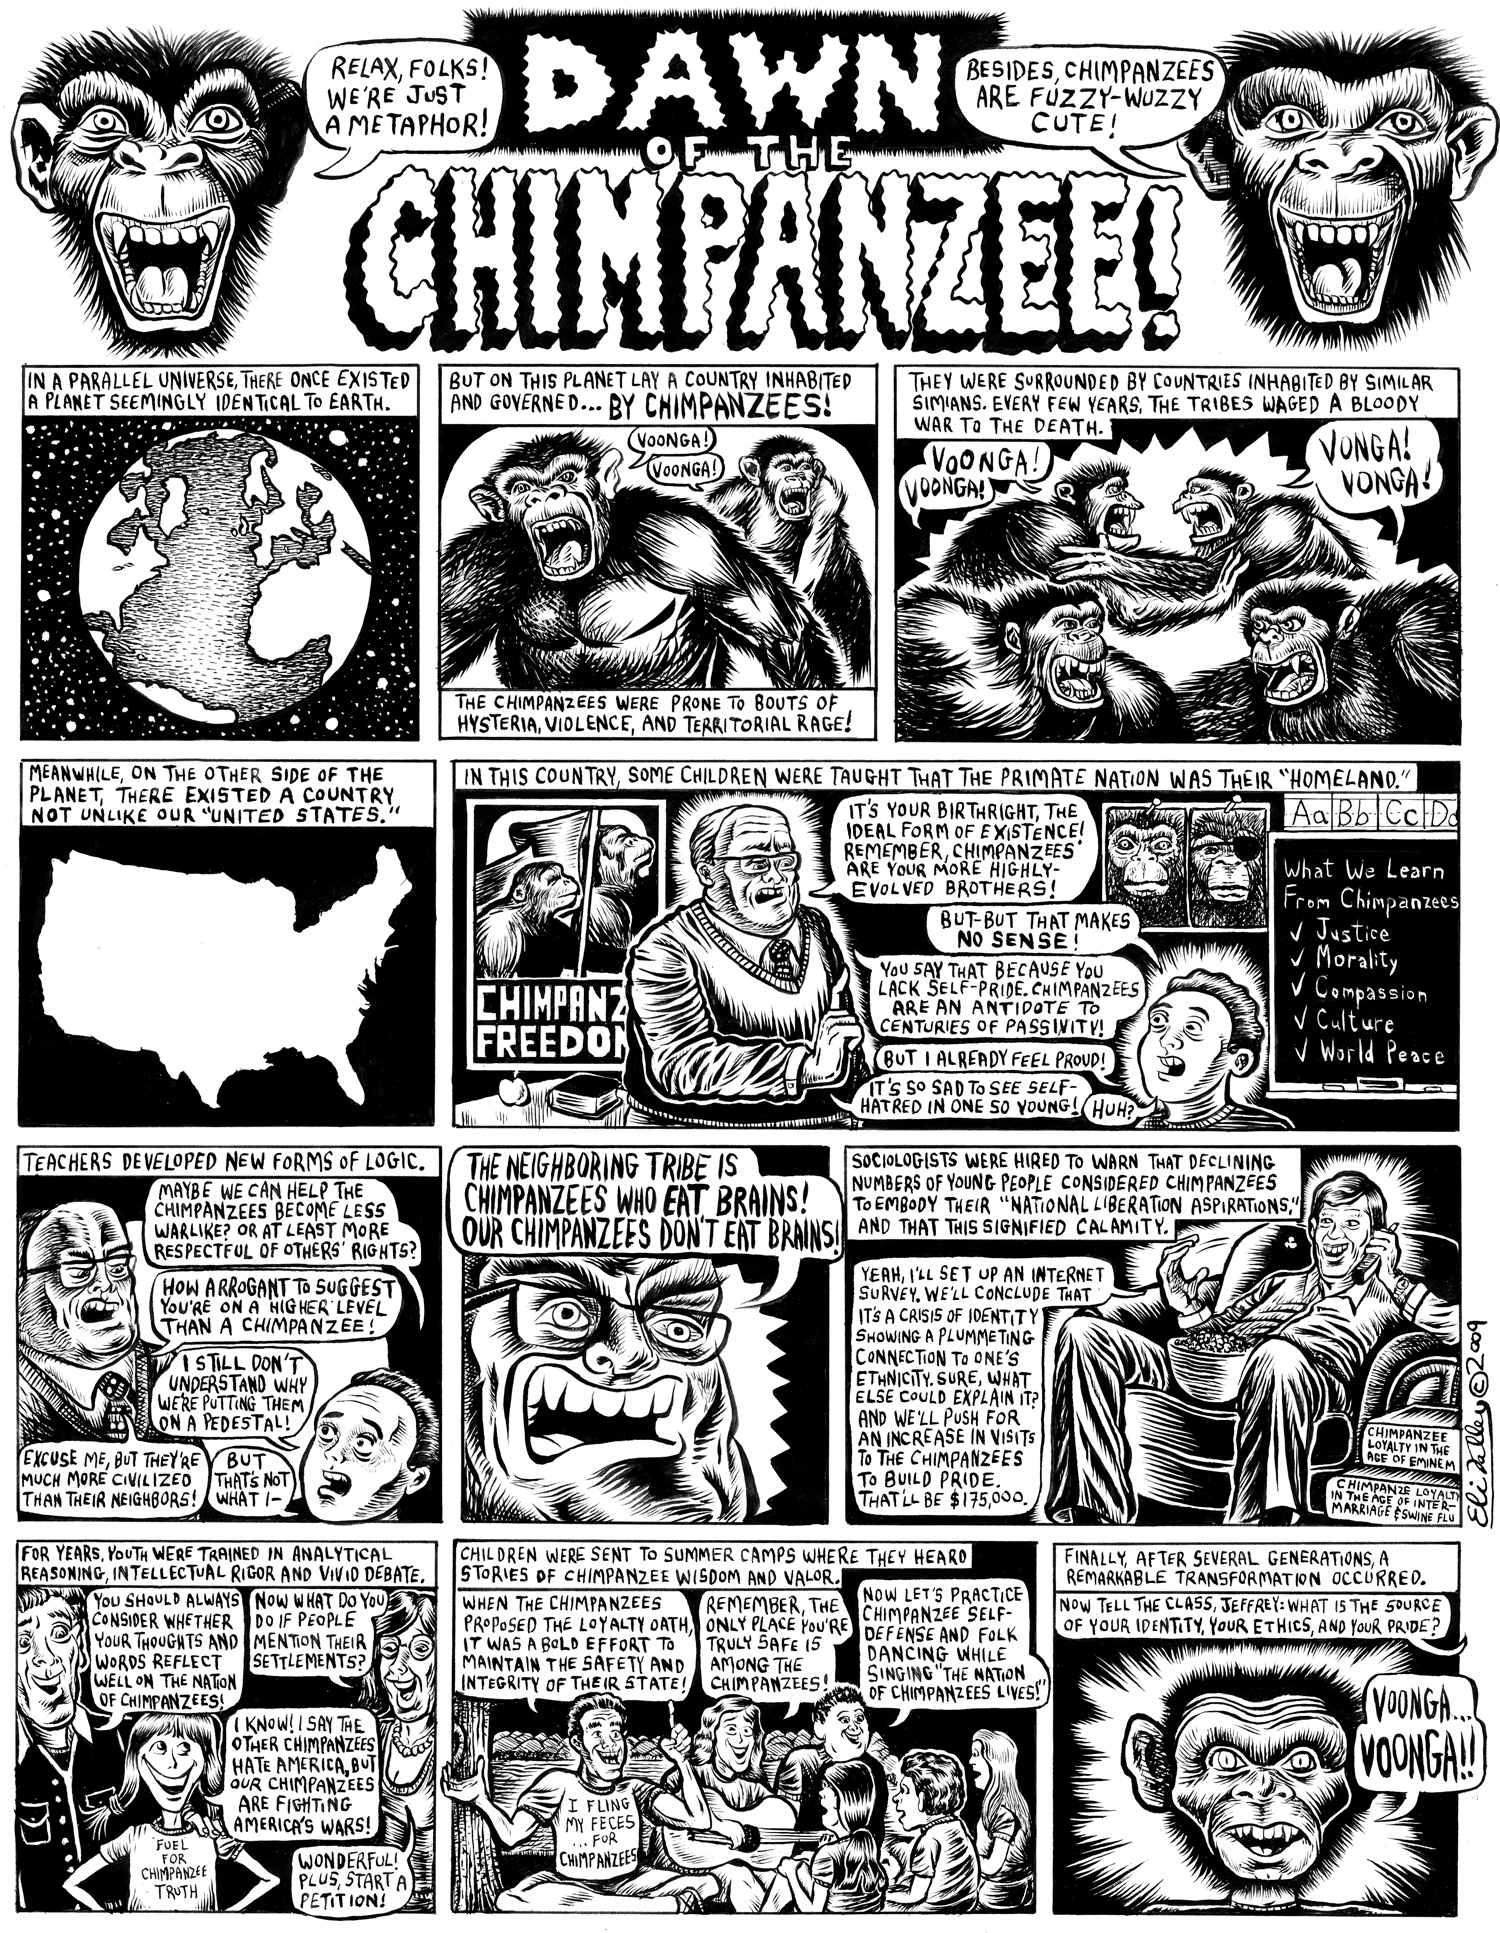 Dawn Of Chimpanzee: Israel Education. Gawker, 8/18/09